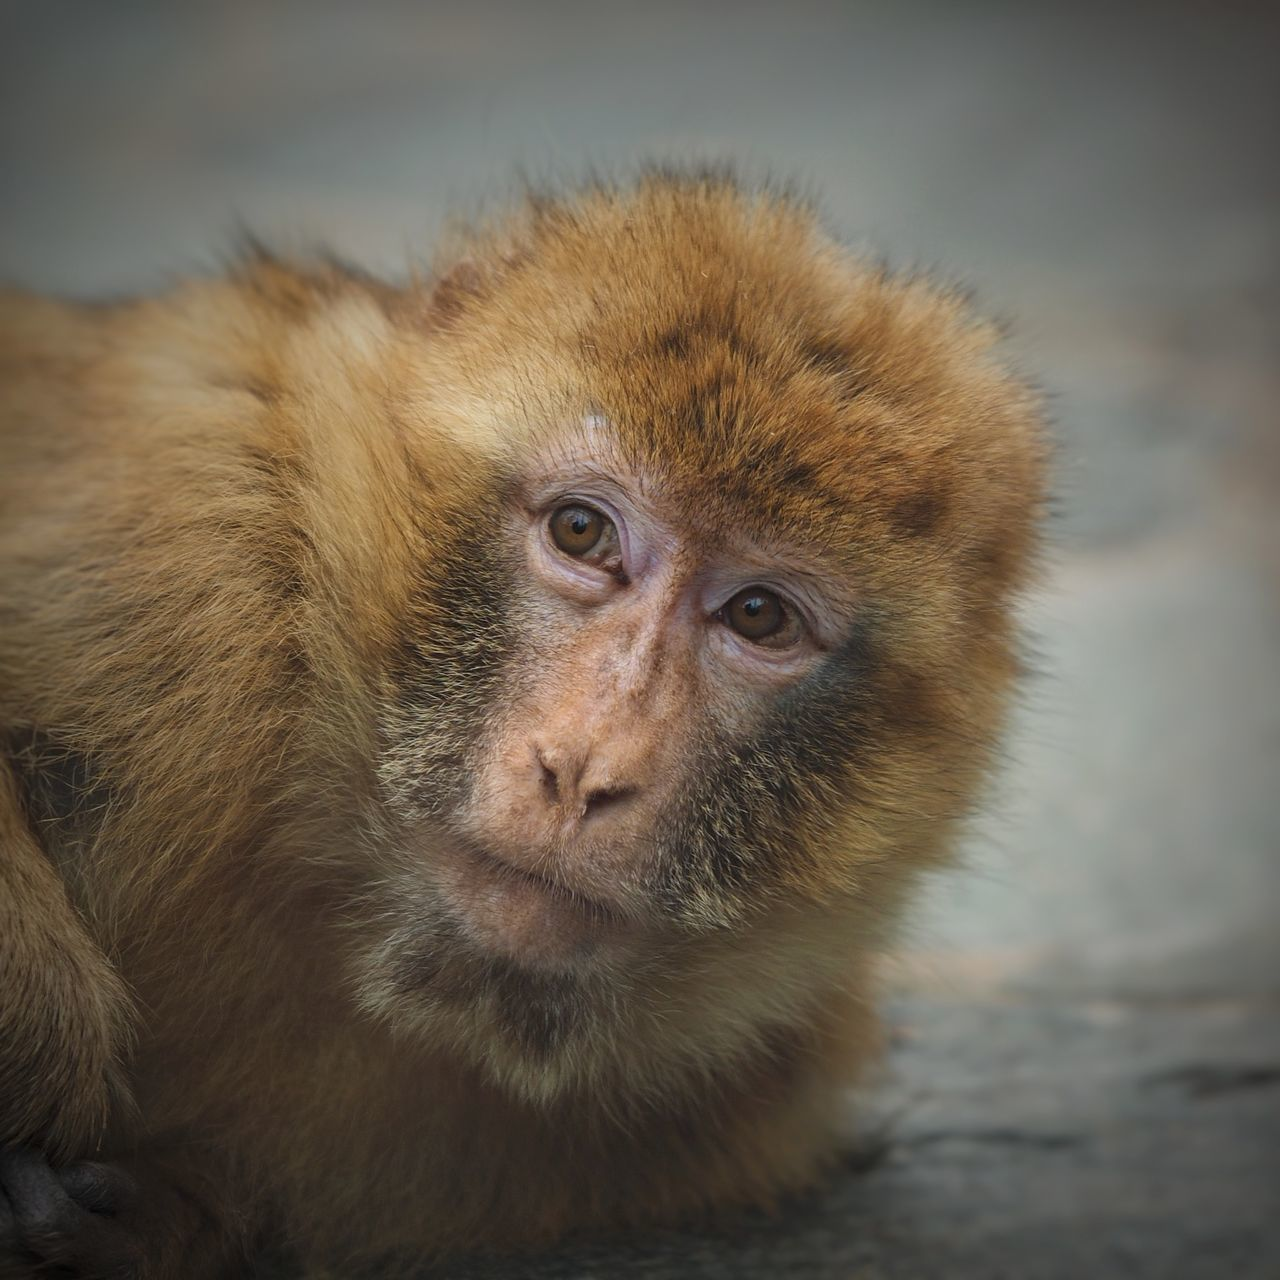 mammal, one animal, animal themes, looking at camera, animals in the wild, close-up, portrait, no people, monkey, animal wildlife, day, outdoors, nature, japanese macaque